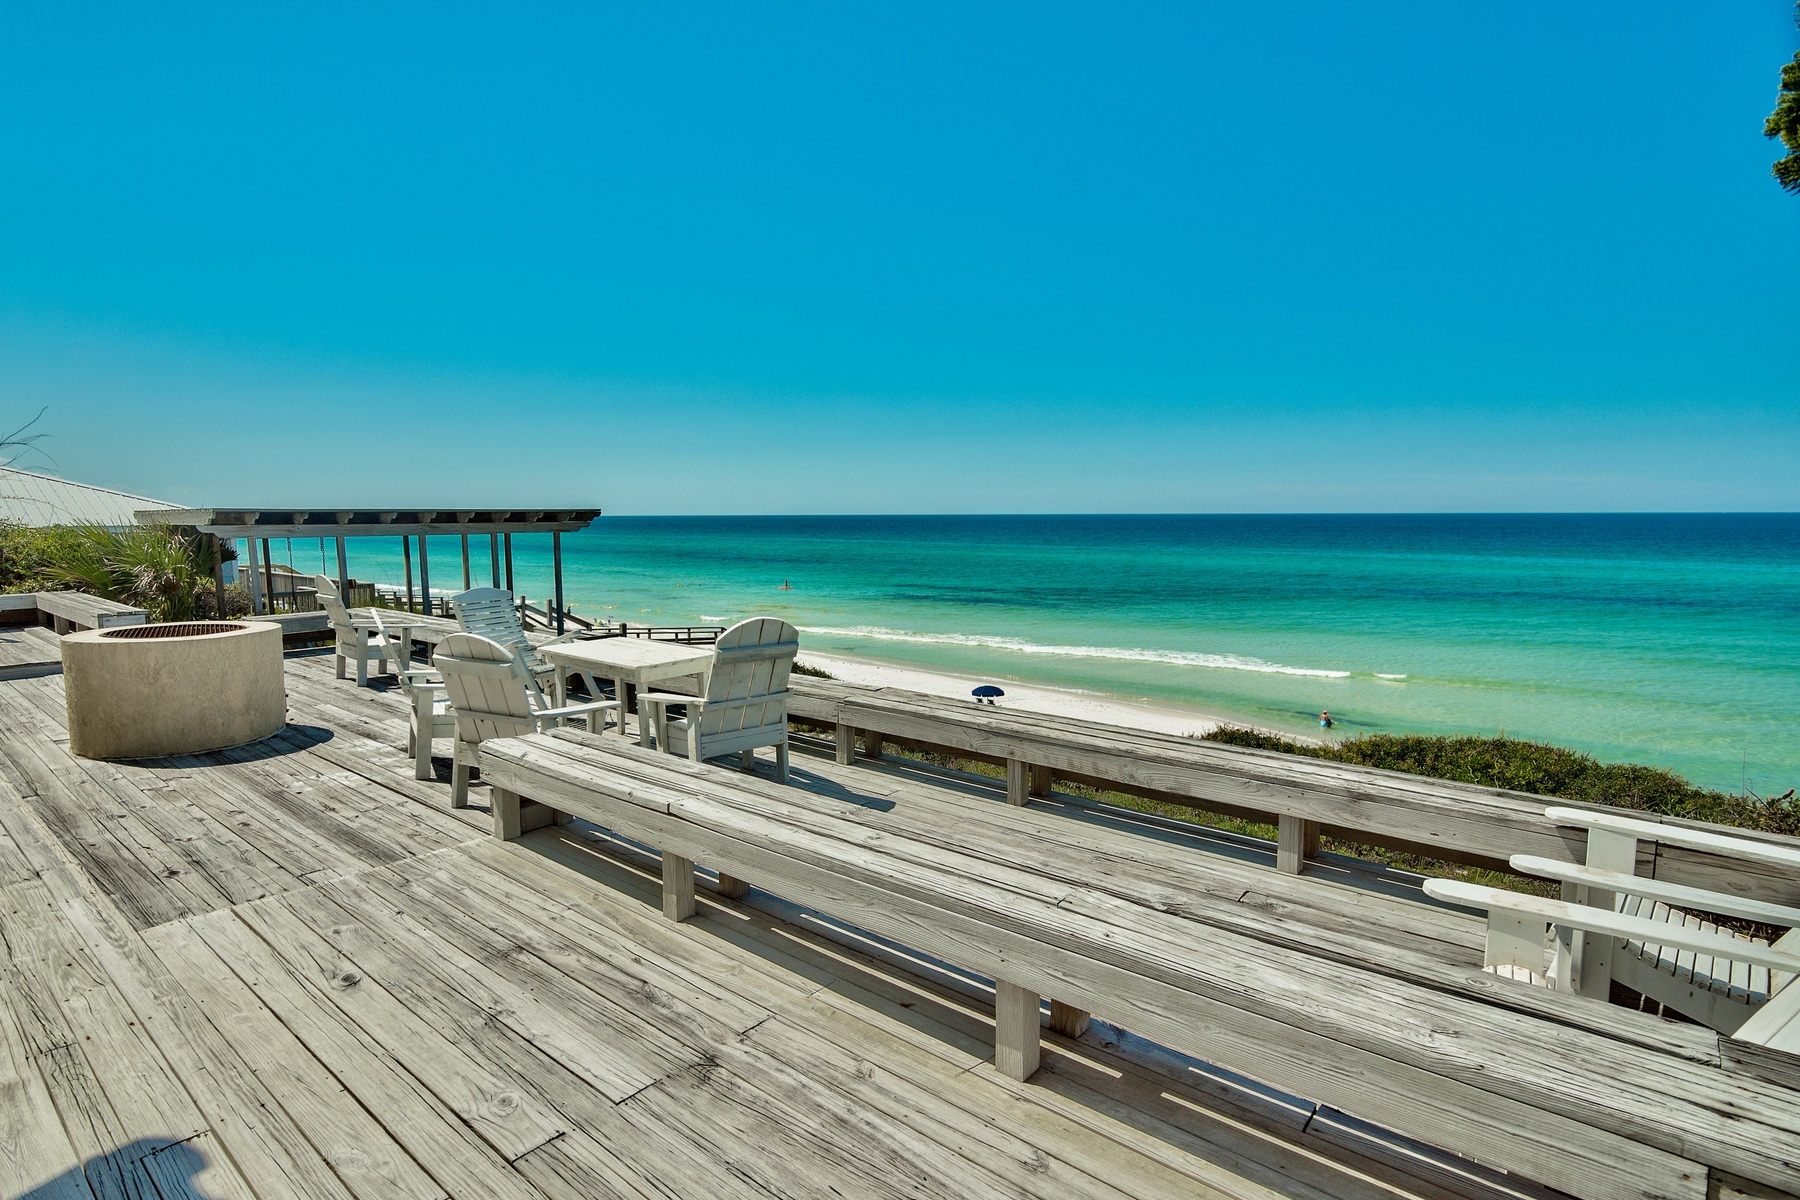 Land for Sale at RARE GULF FRONT PROPERTY WITH PRIVATE STAIRCASE LEADING TO BEACH 8186 E County Highway 30A Seacrest, Florida, 32461 United States